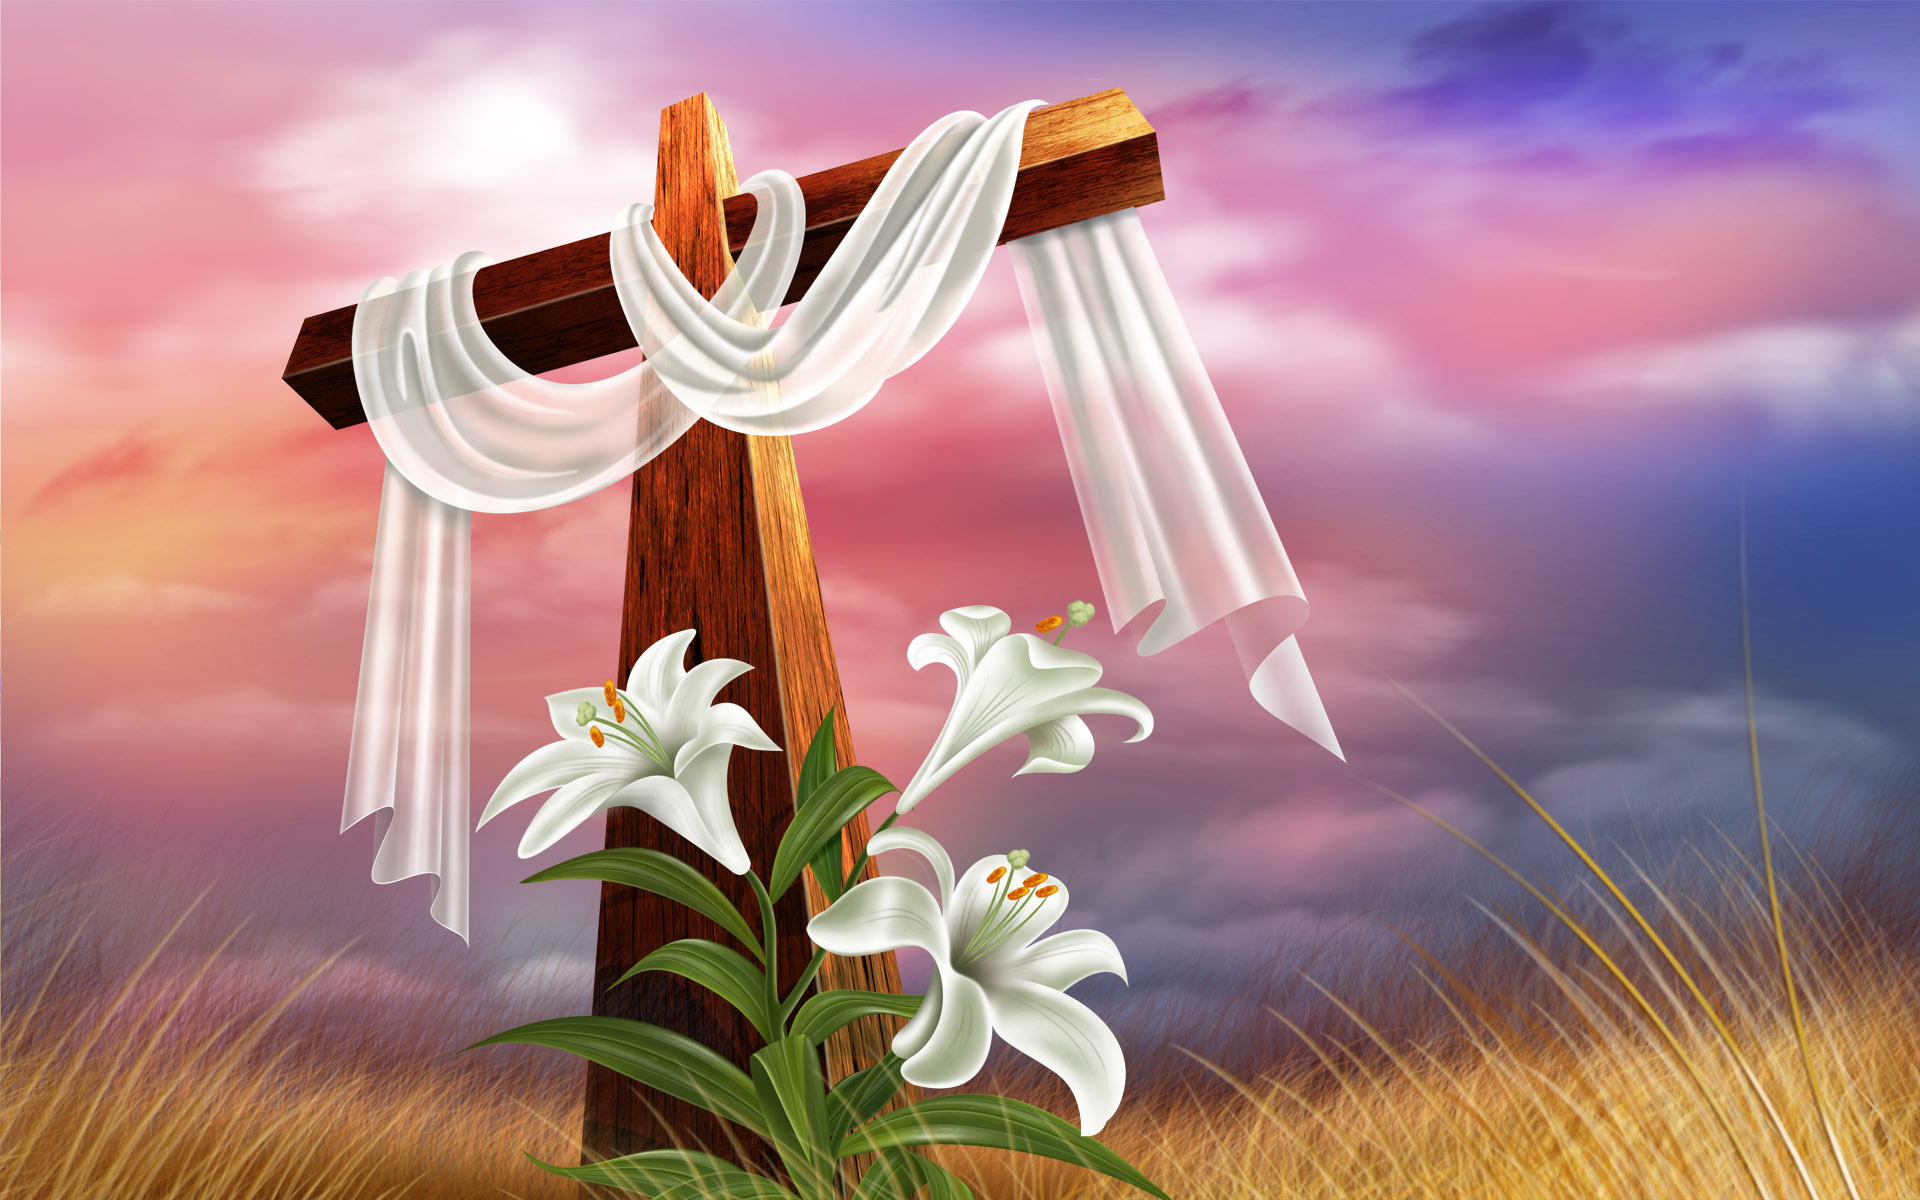 The Great Resurrection wallpapers and images   wallpapers pictures 1920x1200